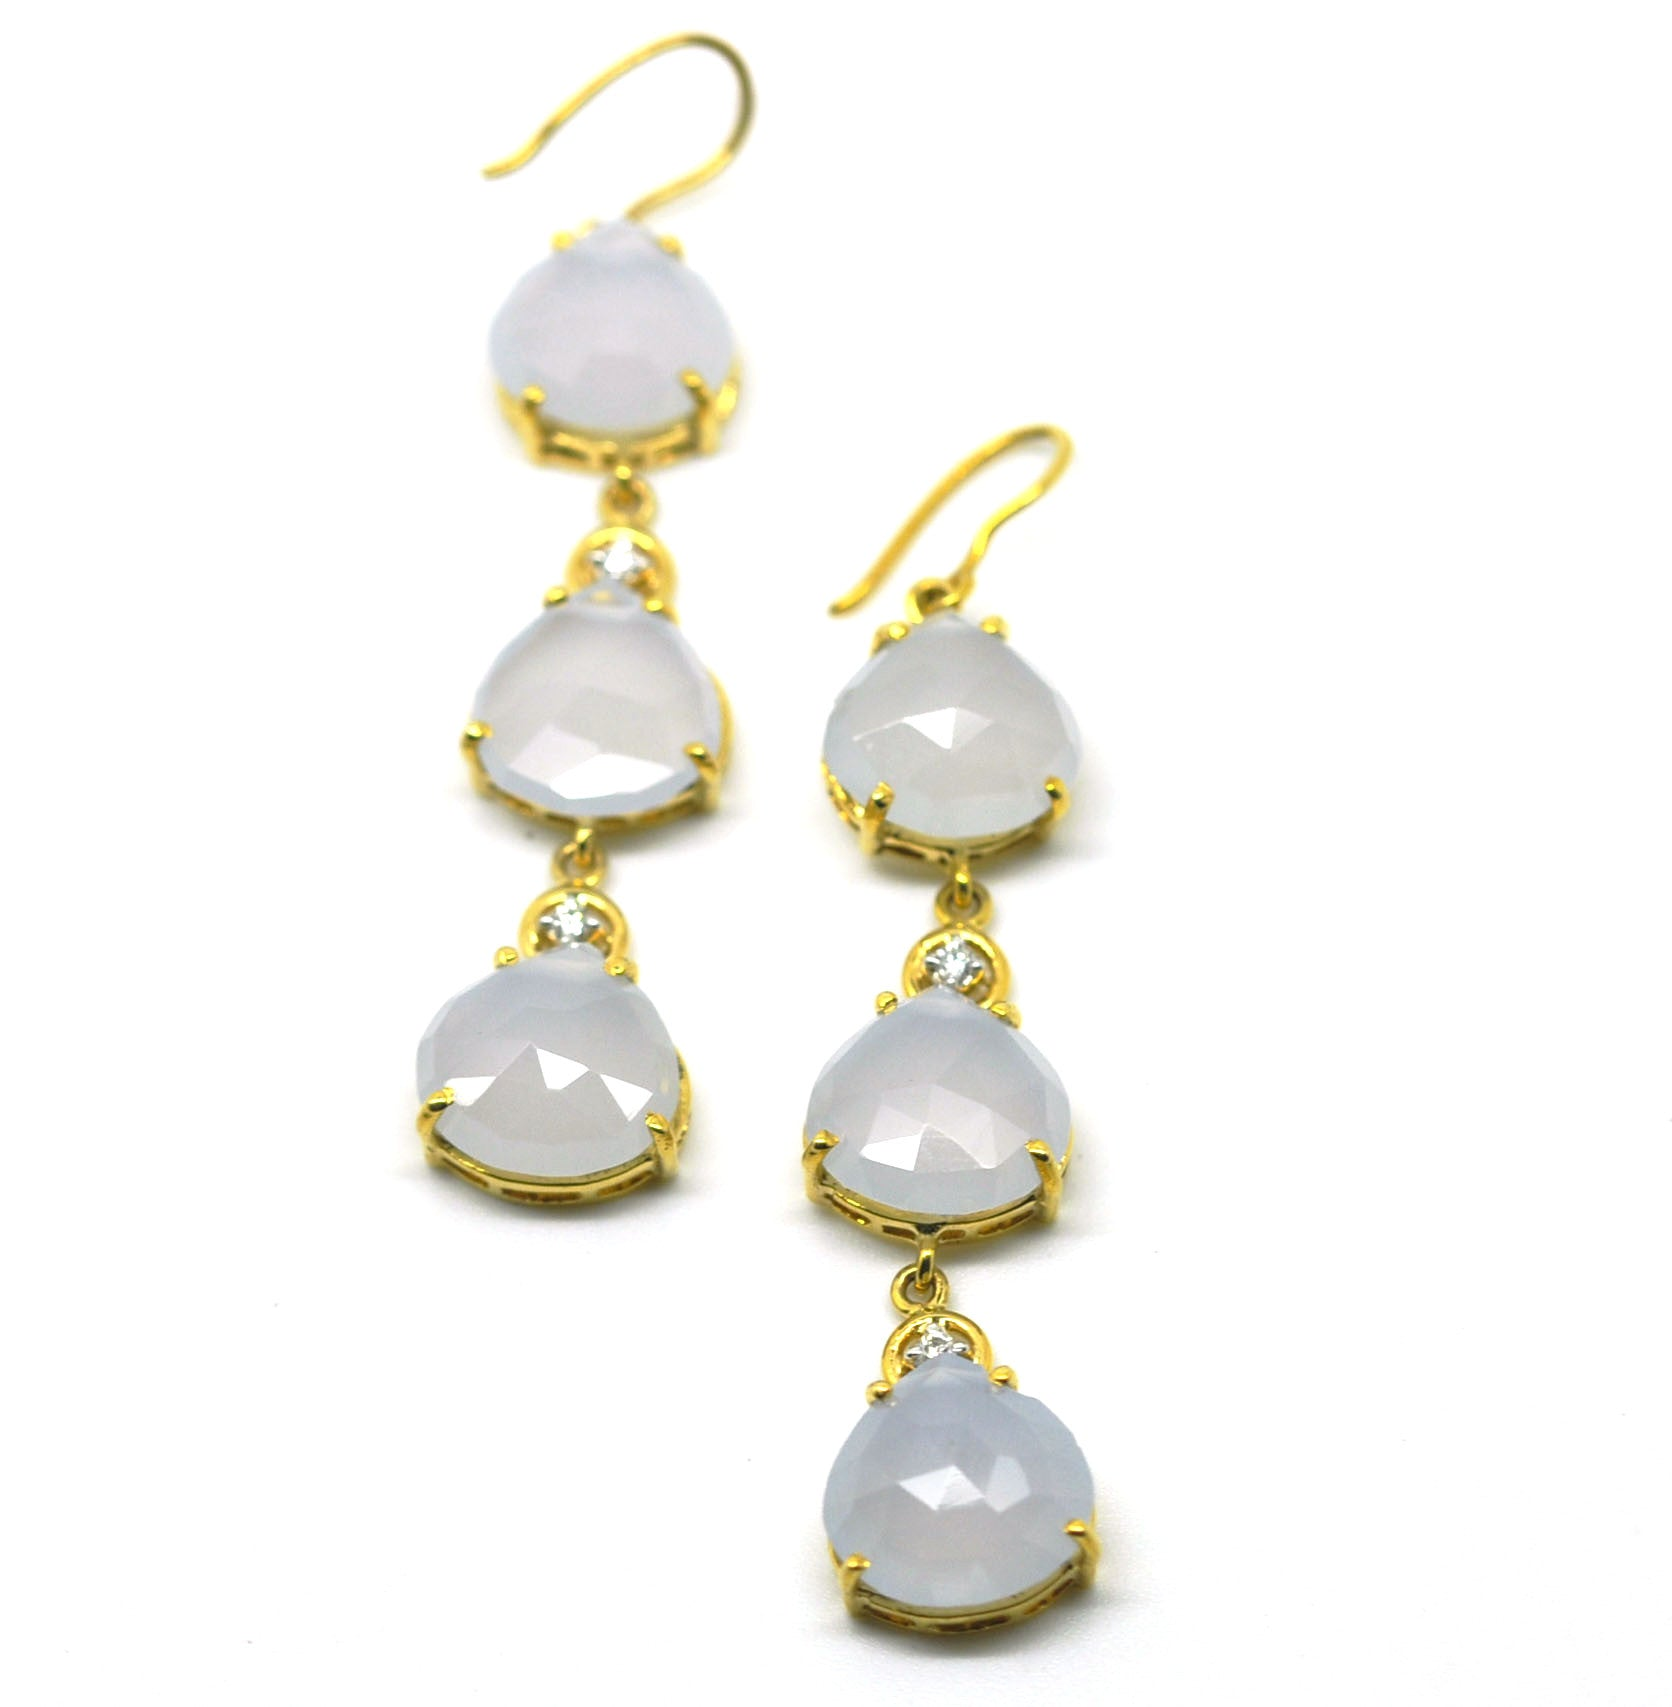 Chalcedony and diamond earrings